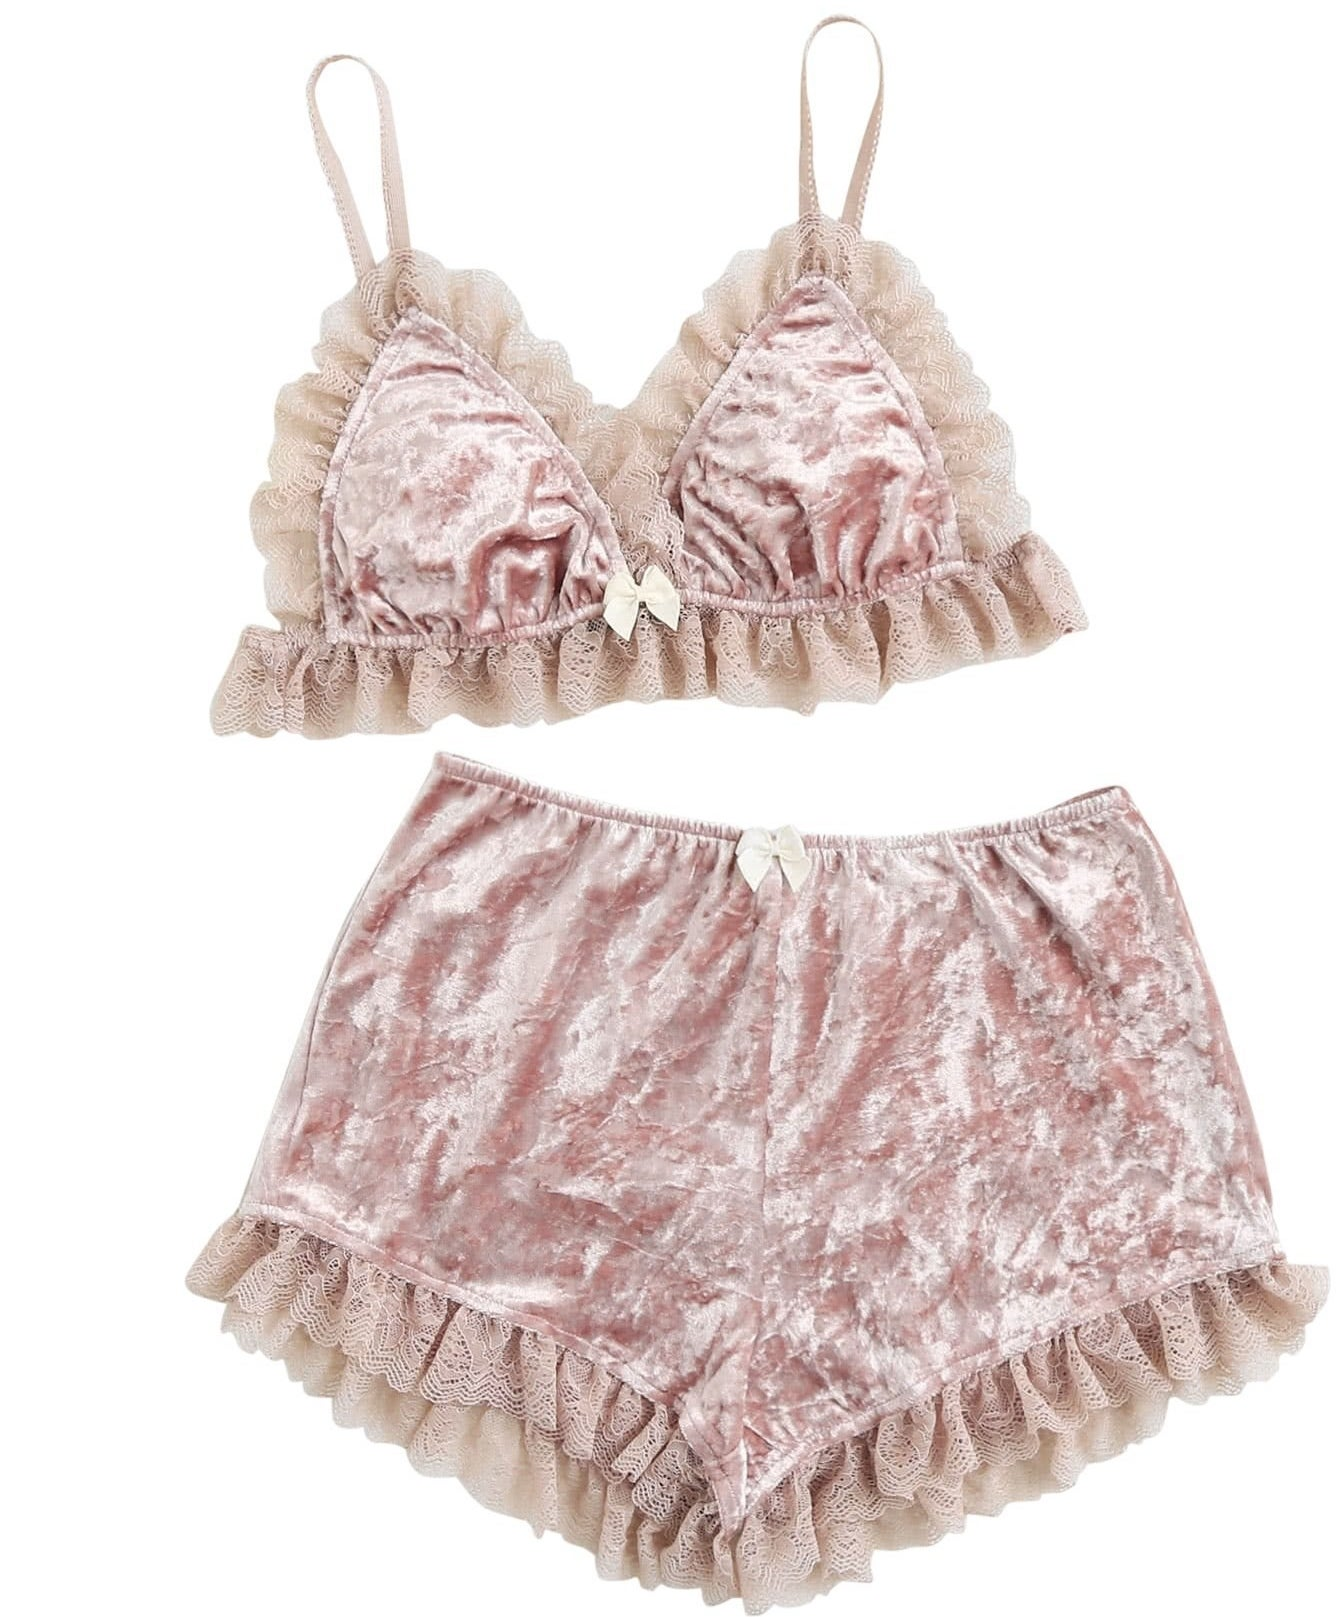 """Promising review: """"This is super soft and comfy. I wear this set often and I'm probably going to buy more from this company. It's made of great material, and the lace isn't scratchy at all. It has survived quite a few washes and there isn't any fraying."""" —Carly EvansonGet it from Amazon for $16.99+ (available in sizes S-XXL and eight styles)."""